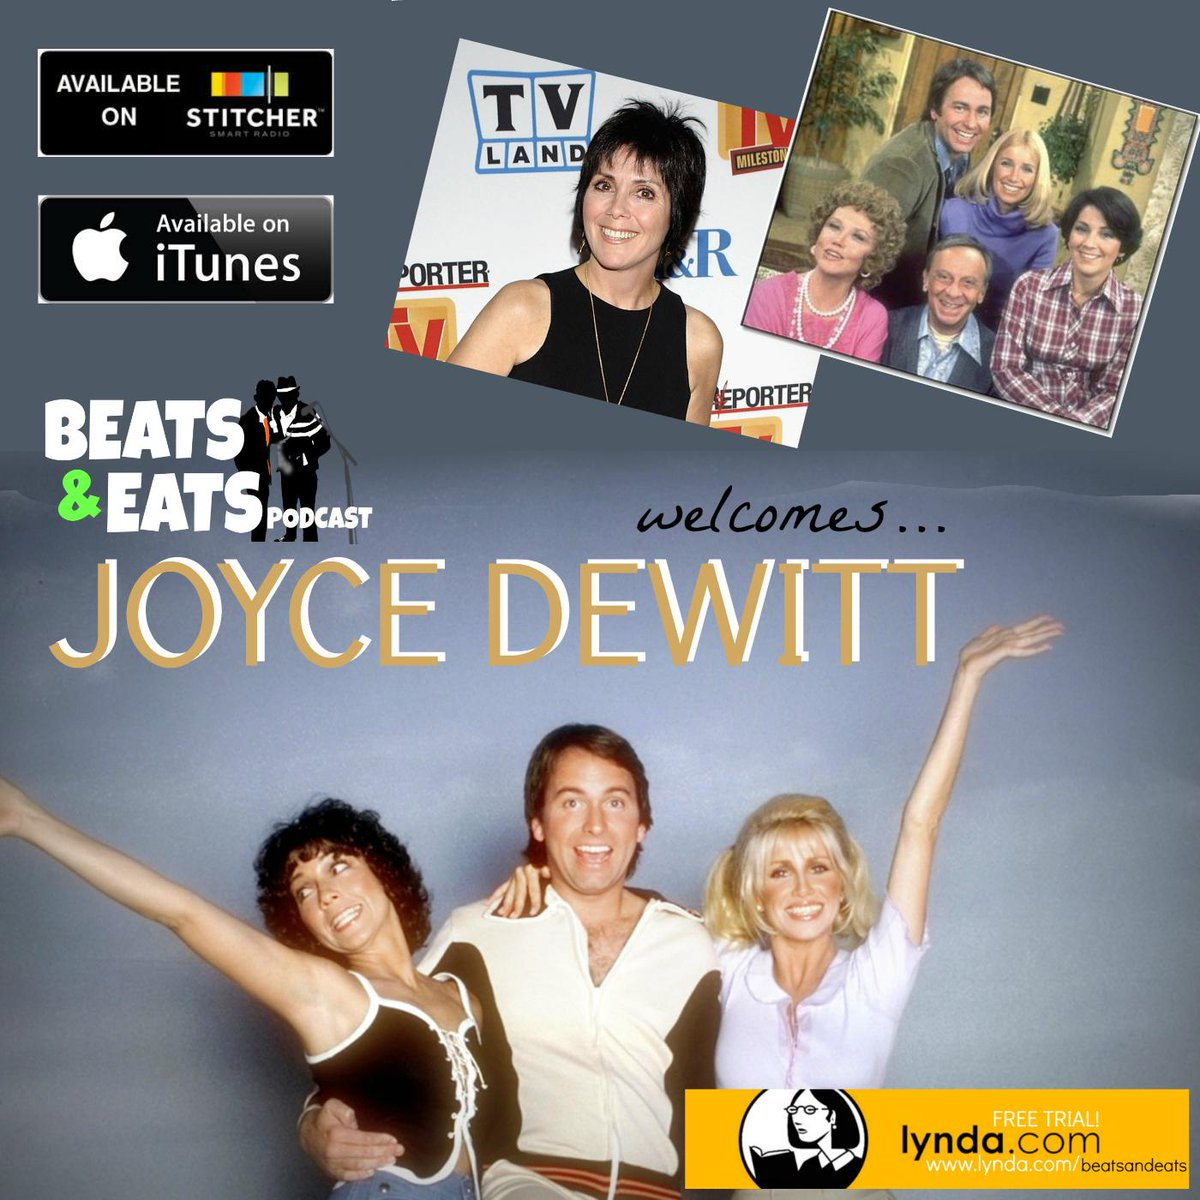 Joyce DeWitt (Janet) discusses her relationships w Suzanne Somers, John Ritter & more here: http://t.co/xeKSvPlp6q | http://t.co/vuobHs63Az